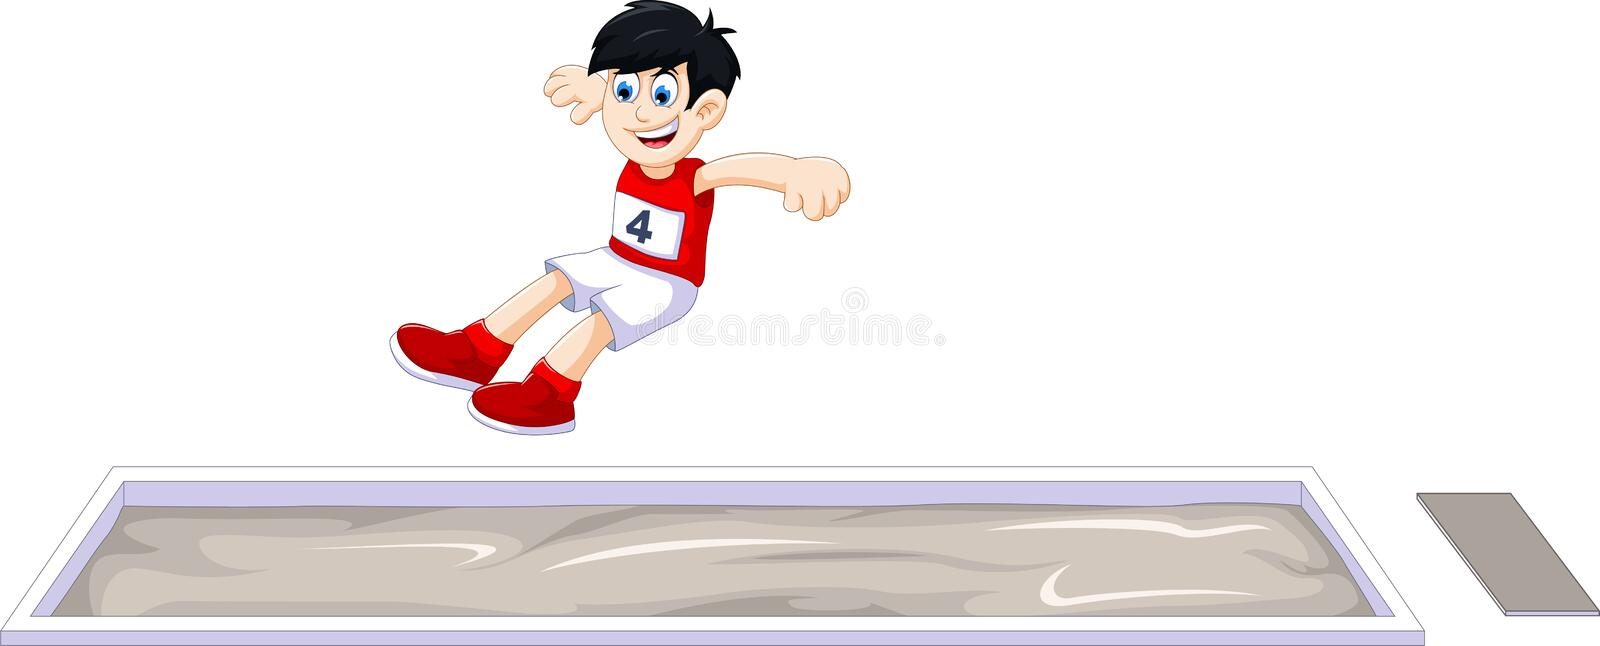 Cartoon boy athlete doing long jump in the competition stock illustration